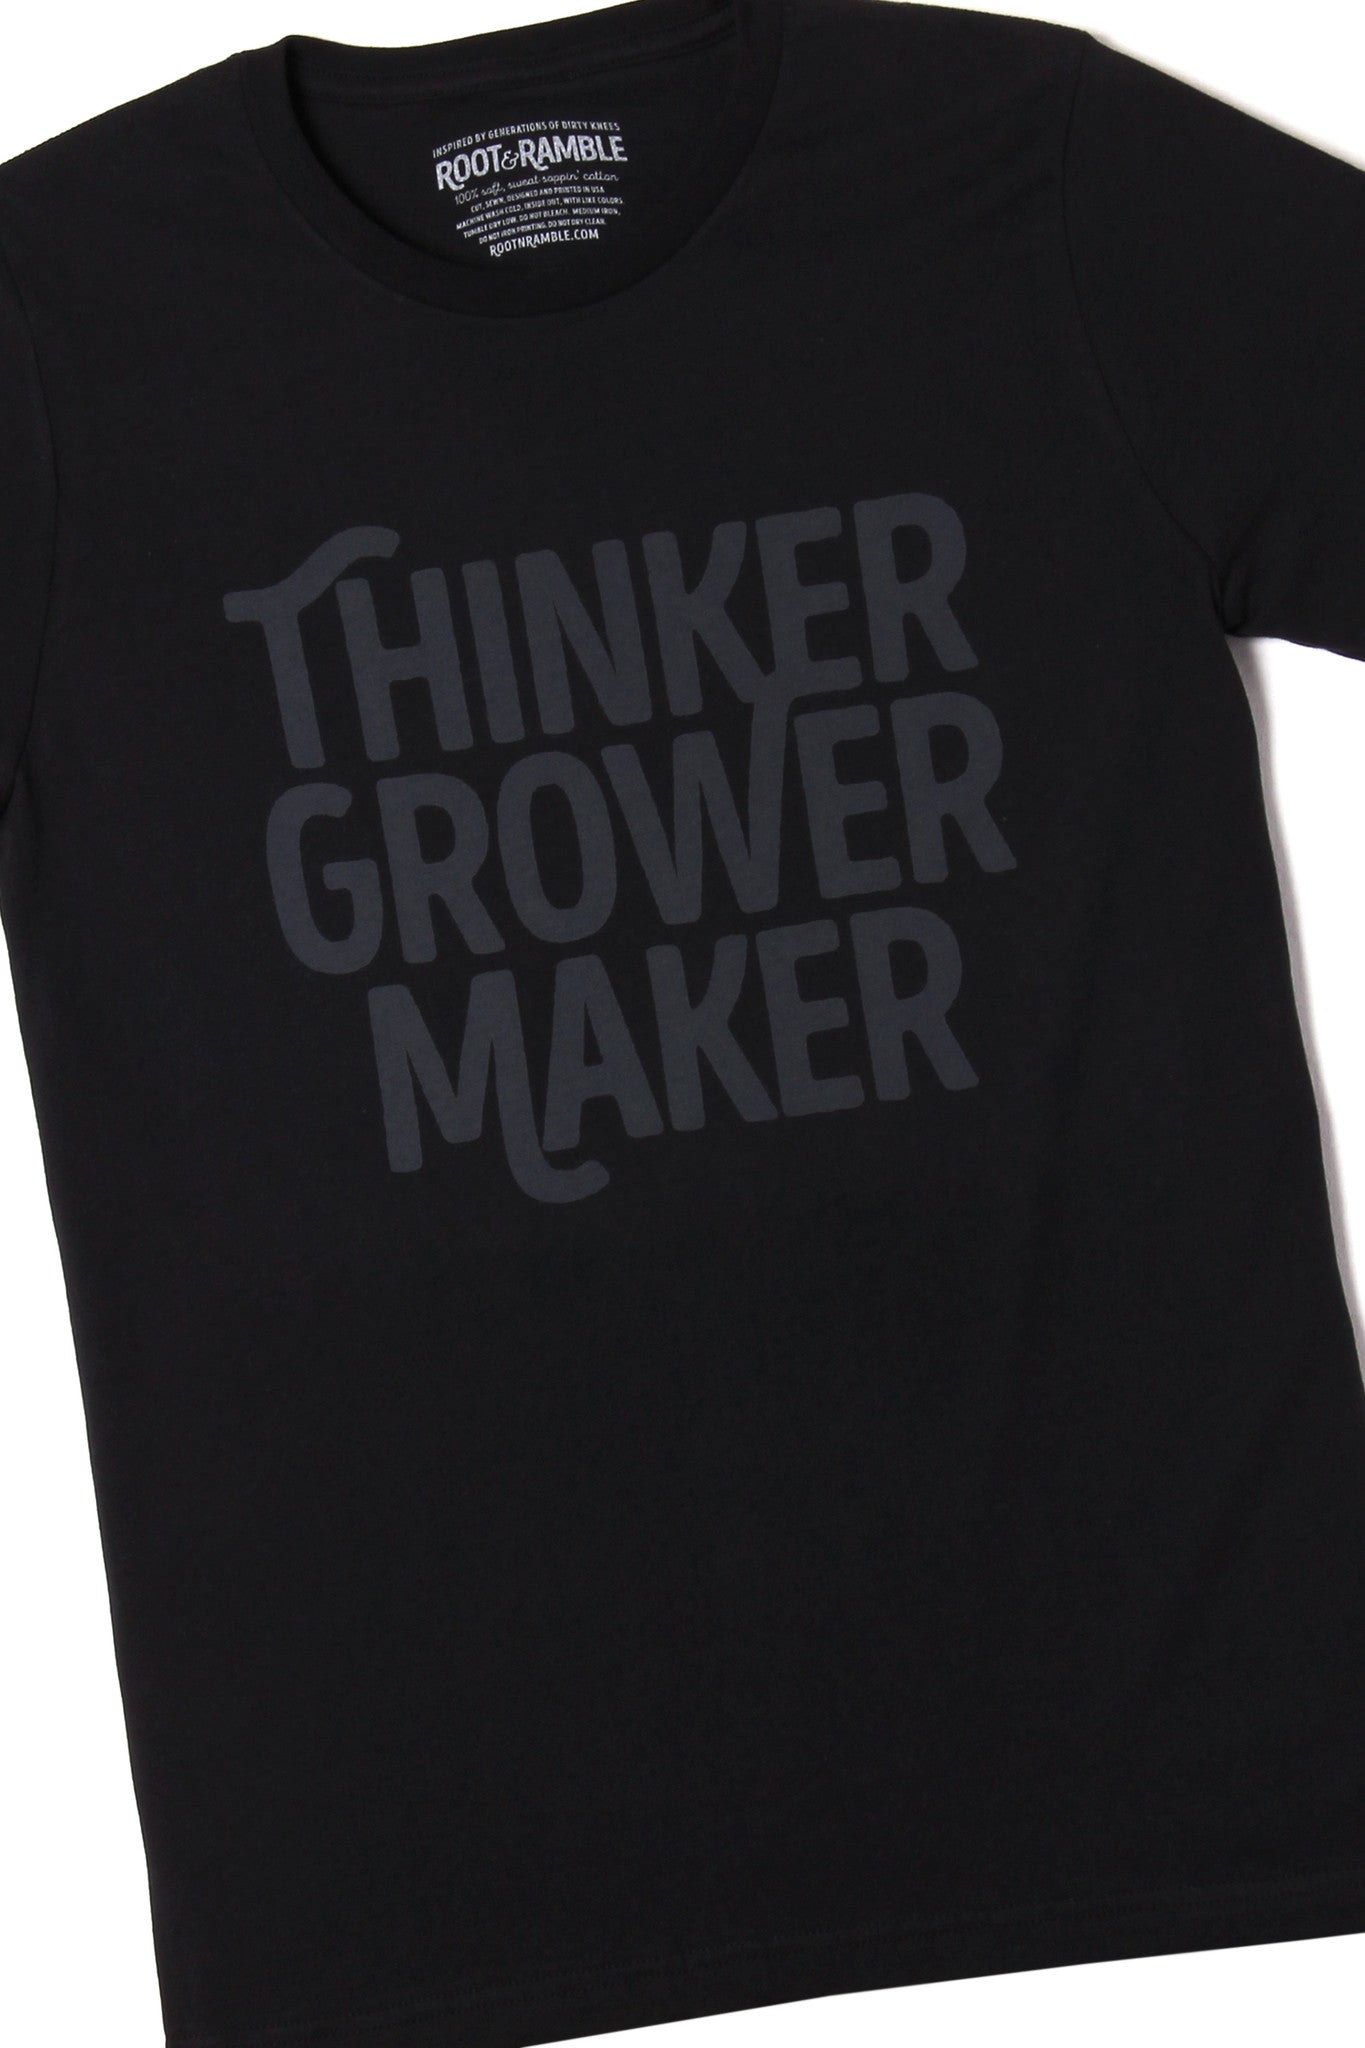 Letting Product Speak For Itself >> The Thinker Grower Maker T Shirt By Root Ramble Shop Online